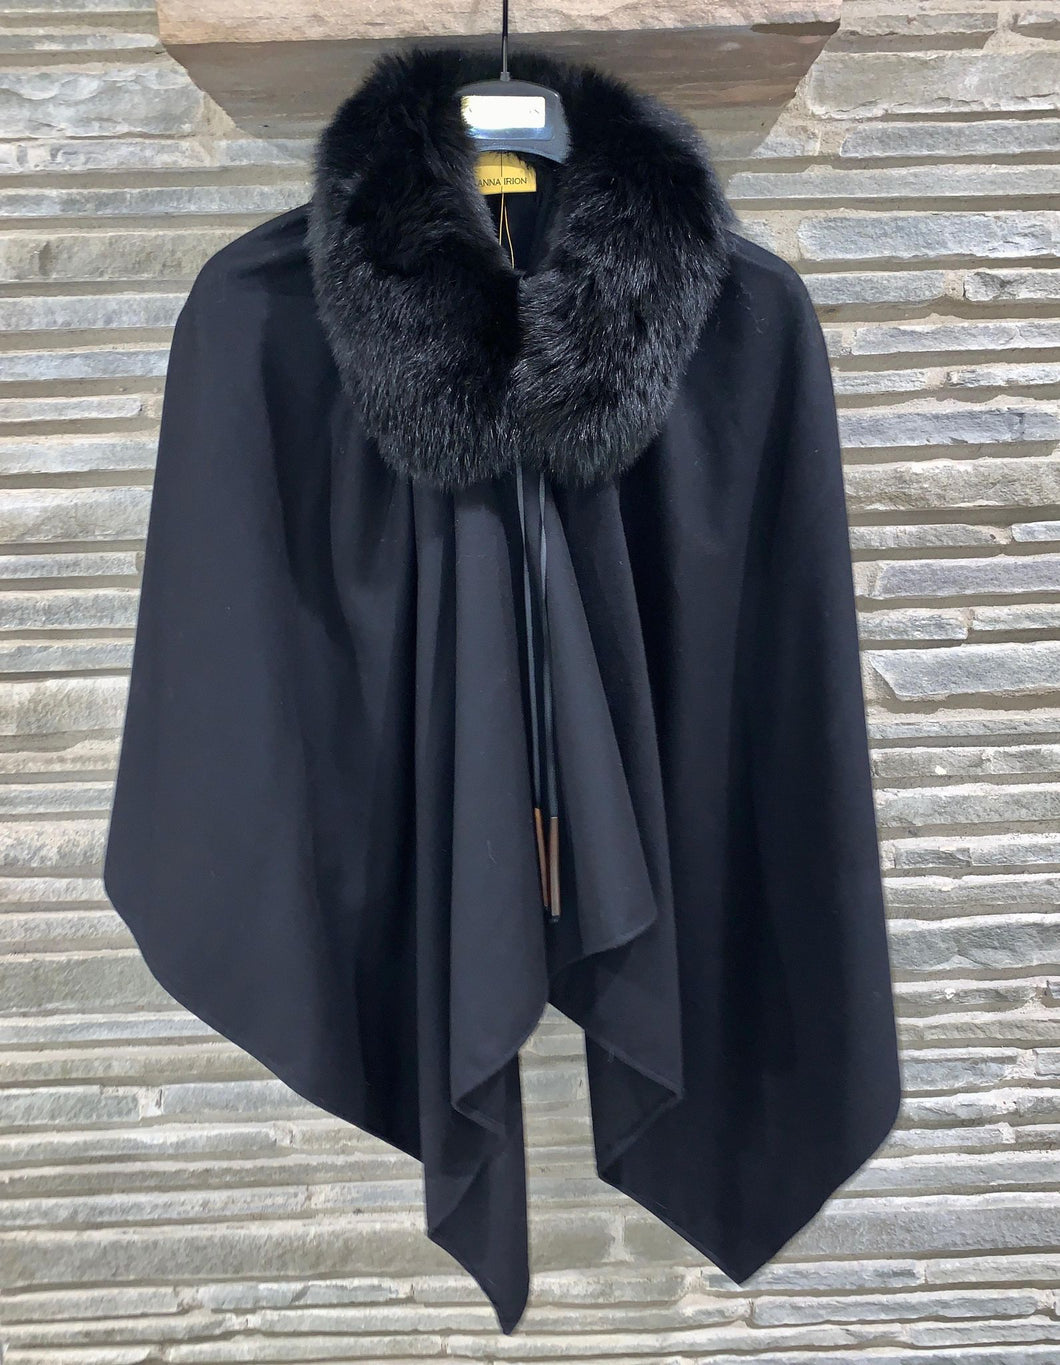 Loro Piana 100% Baby Cashmere Black Shawl with Blue Fox Dyed Black